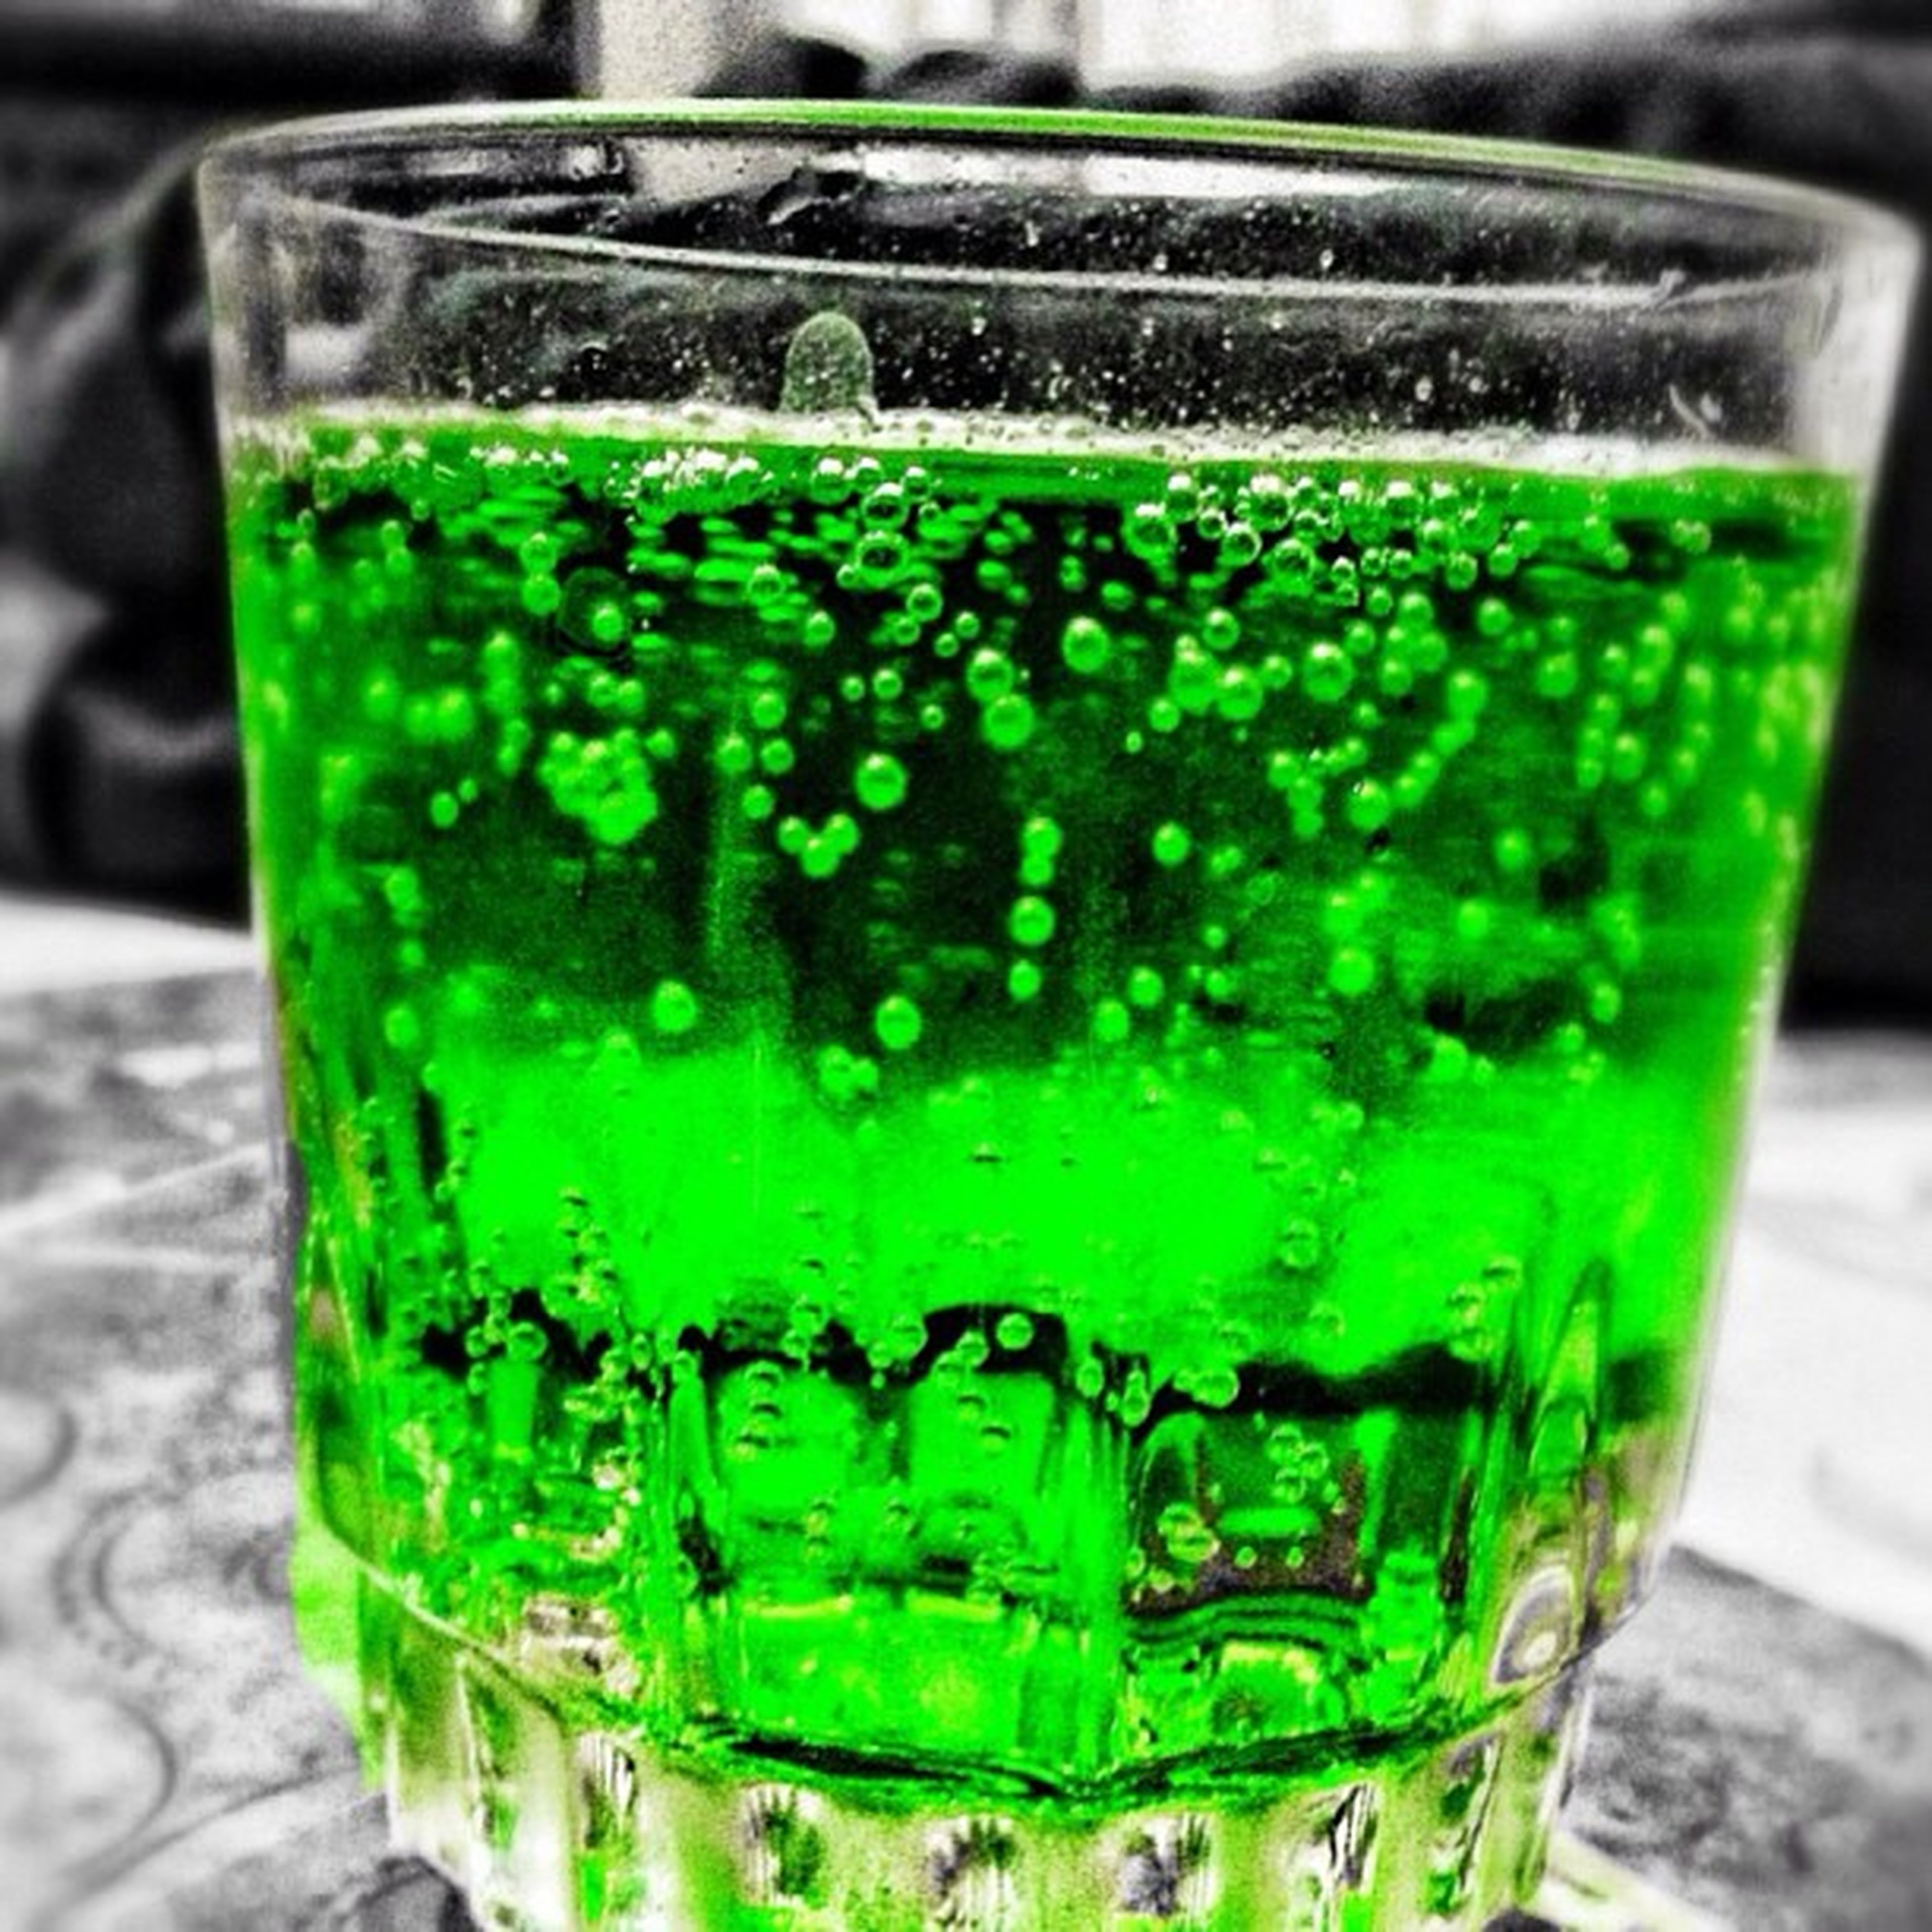 food and drink, drink, close-up, glass - material, green color, focus on foreground, drinking glass, refreshment, still life, freshness, indoors, transparent, alcohol, table, glass, selective focus, no people, cold temperature, bottle, mint leaf - culinary